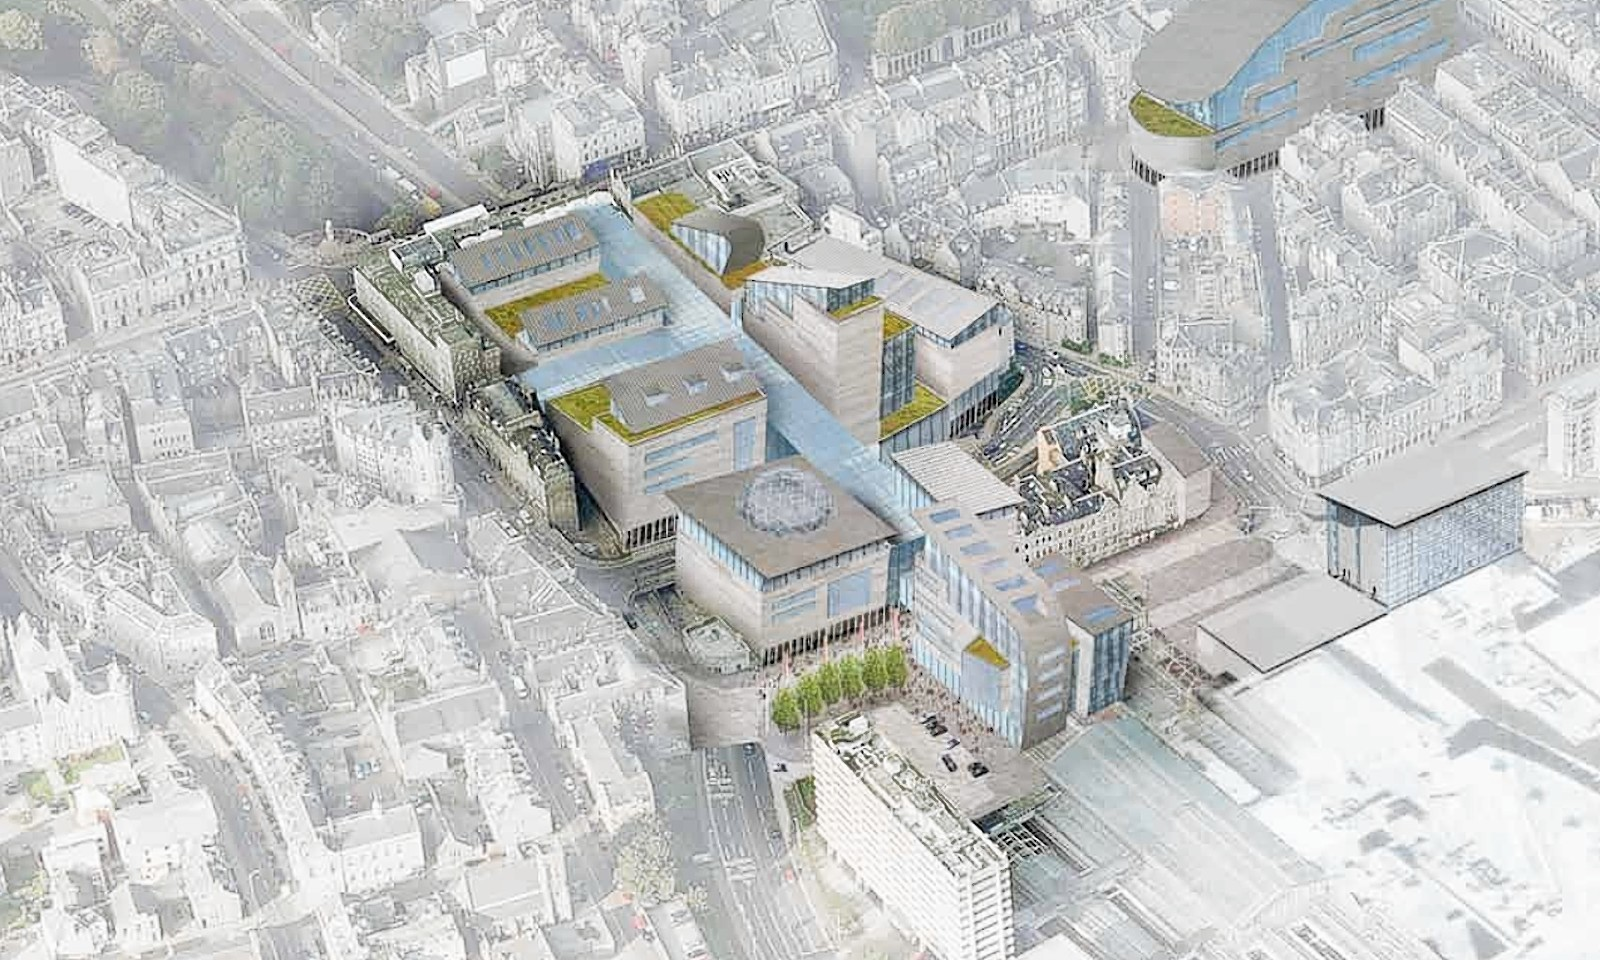 The masterplan reveals the vision for the land around the train and bus stations up to Union Street